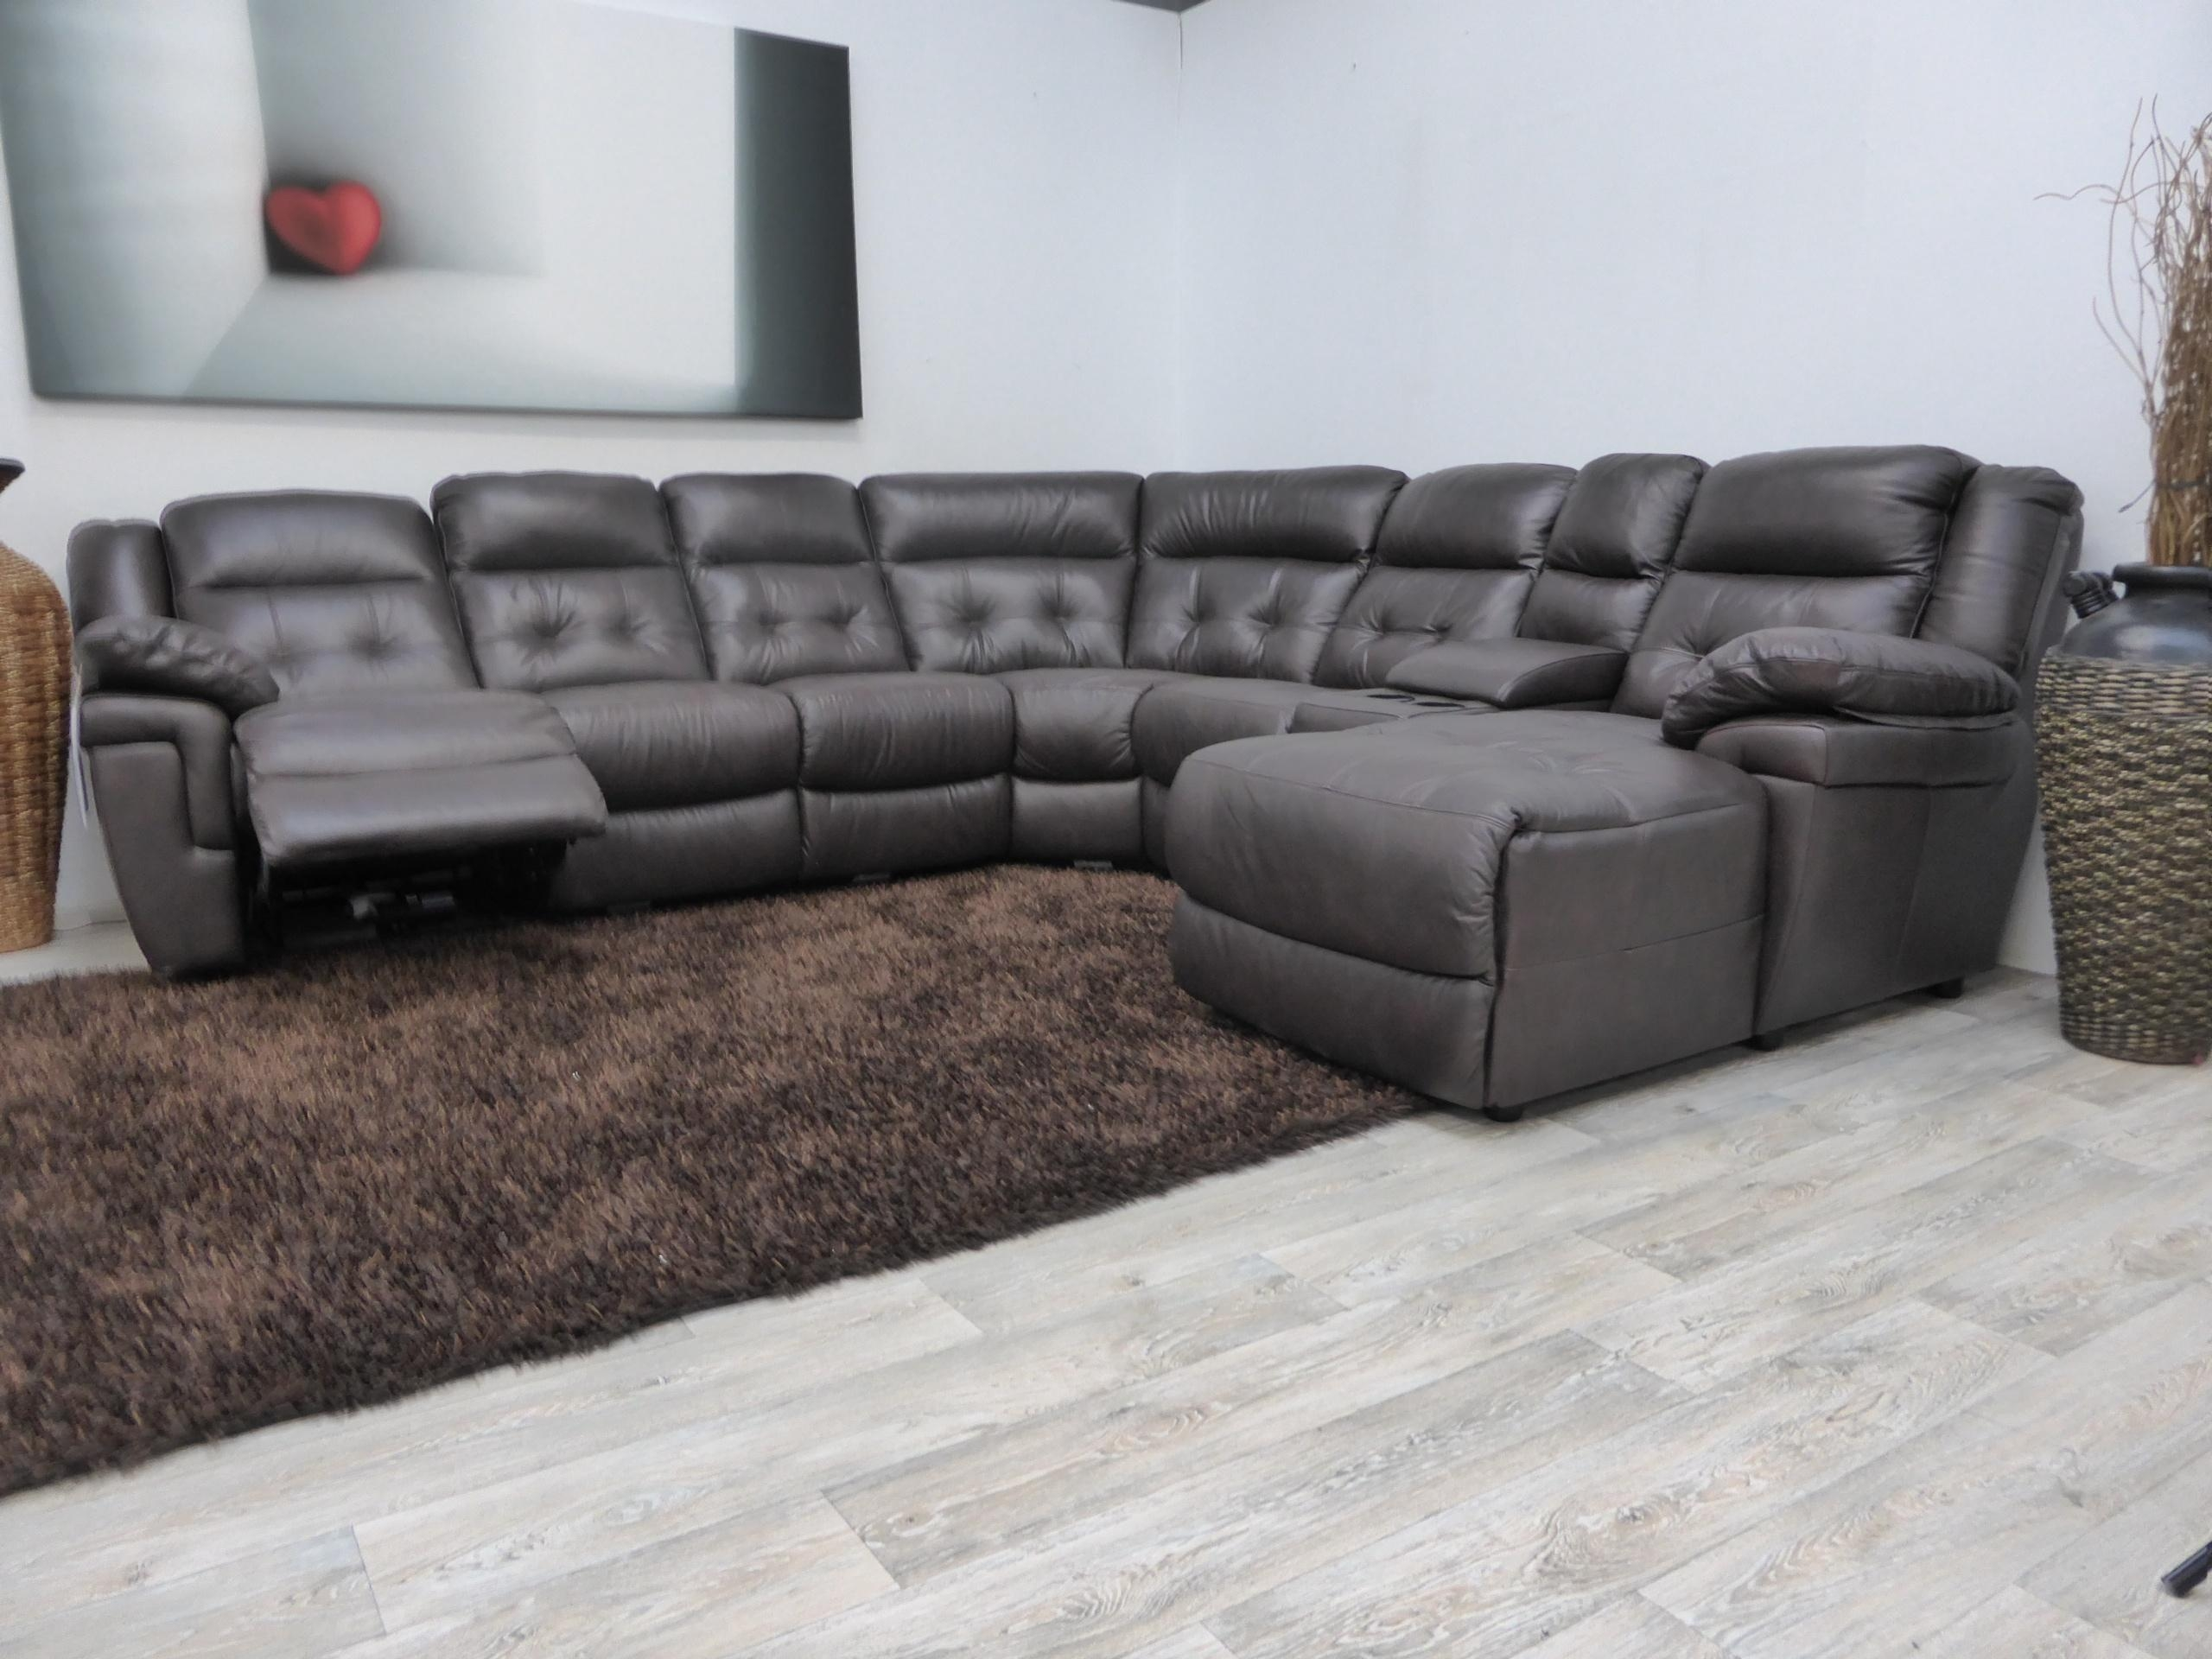 Lay Z Boy Corner Sofa | Tehranmix Decoration In Lazyboy Sectional Sofa (Image 12 of 20)